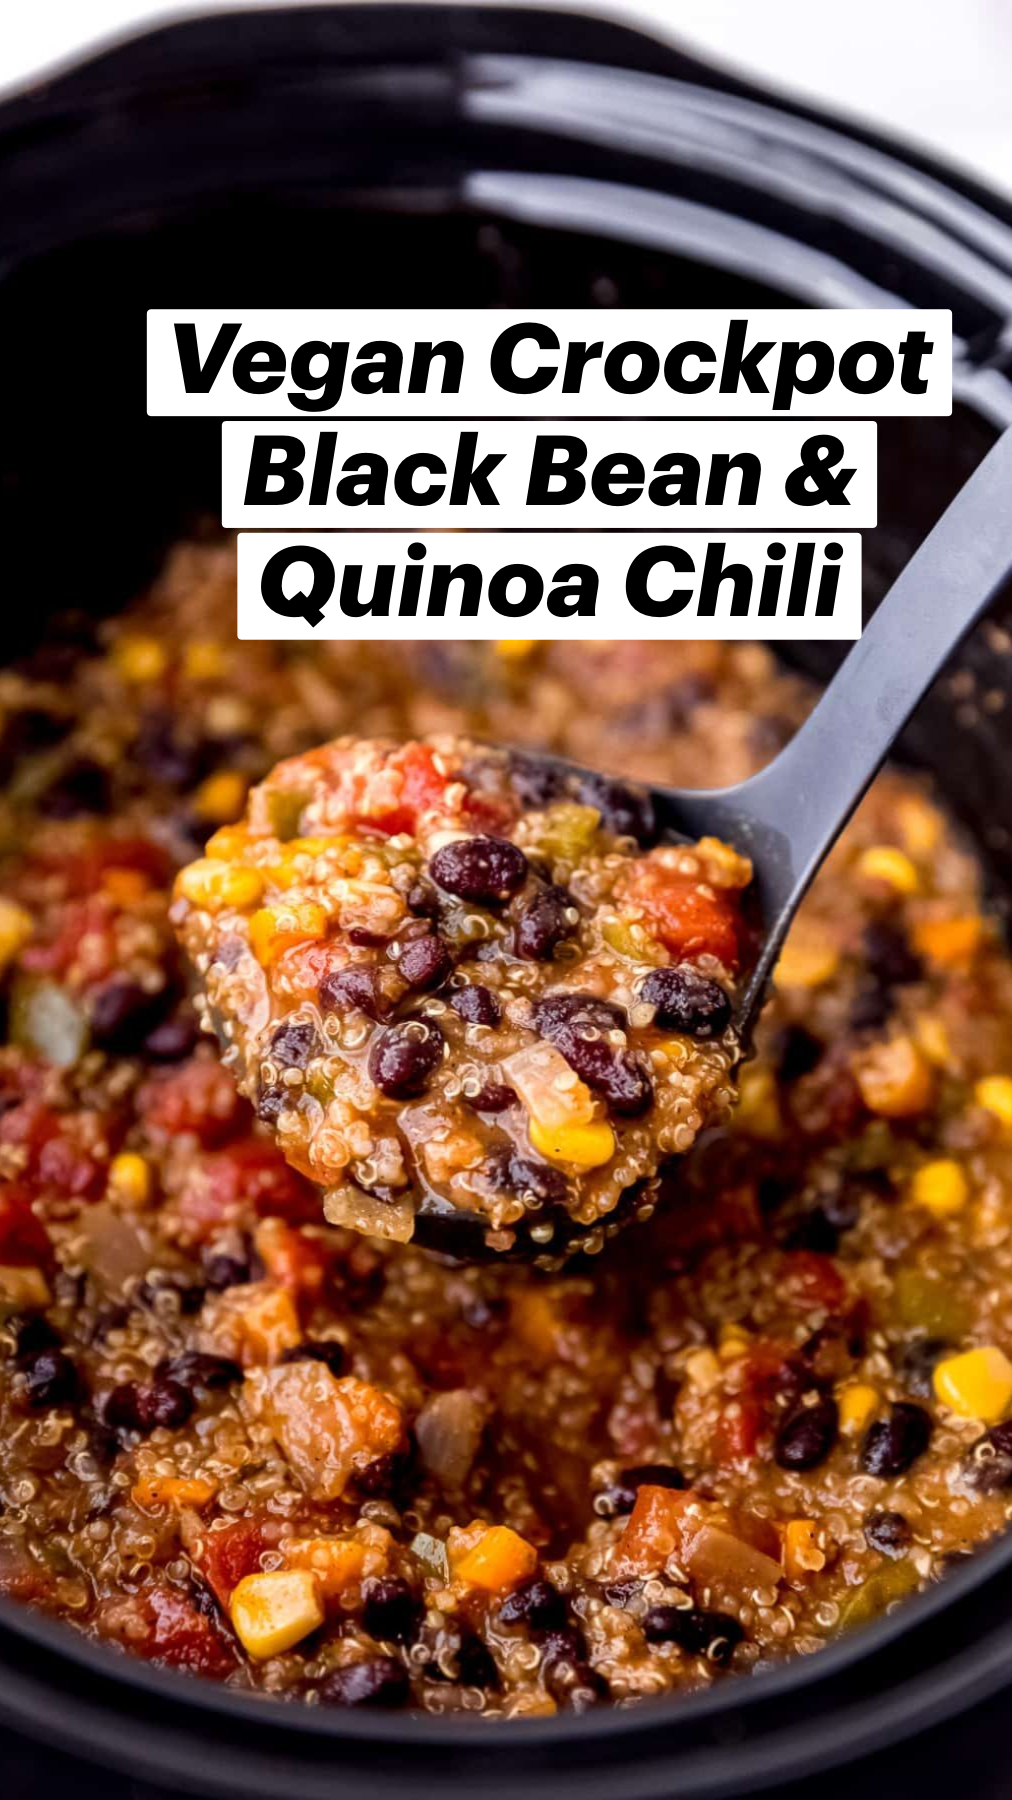 Vegan Crockpot Black Bean & Quinoa Chile